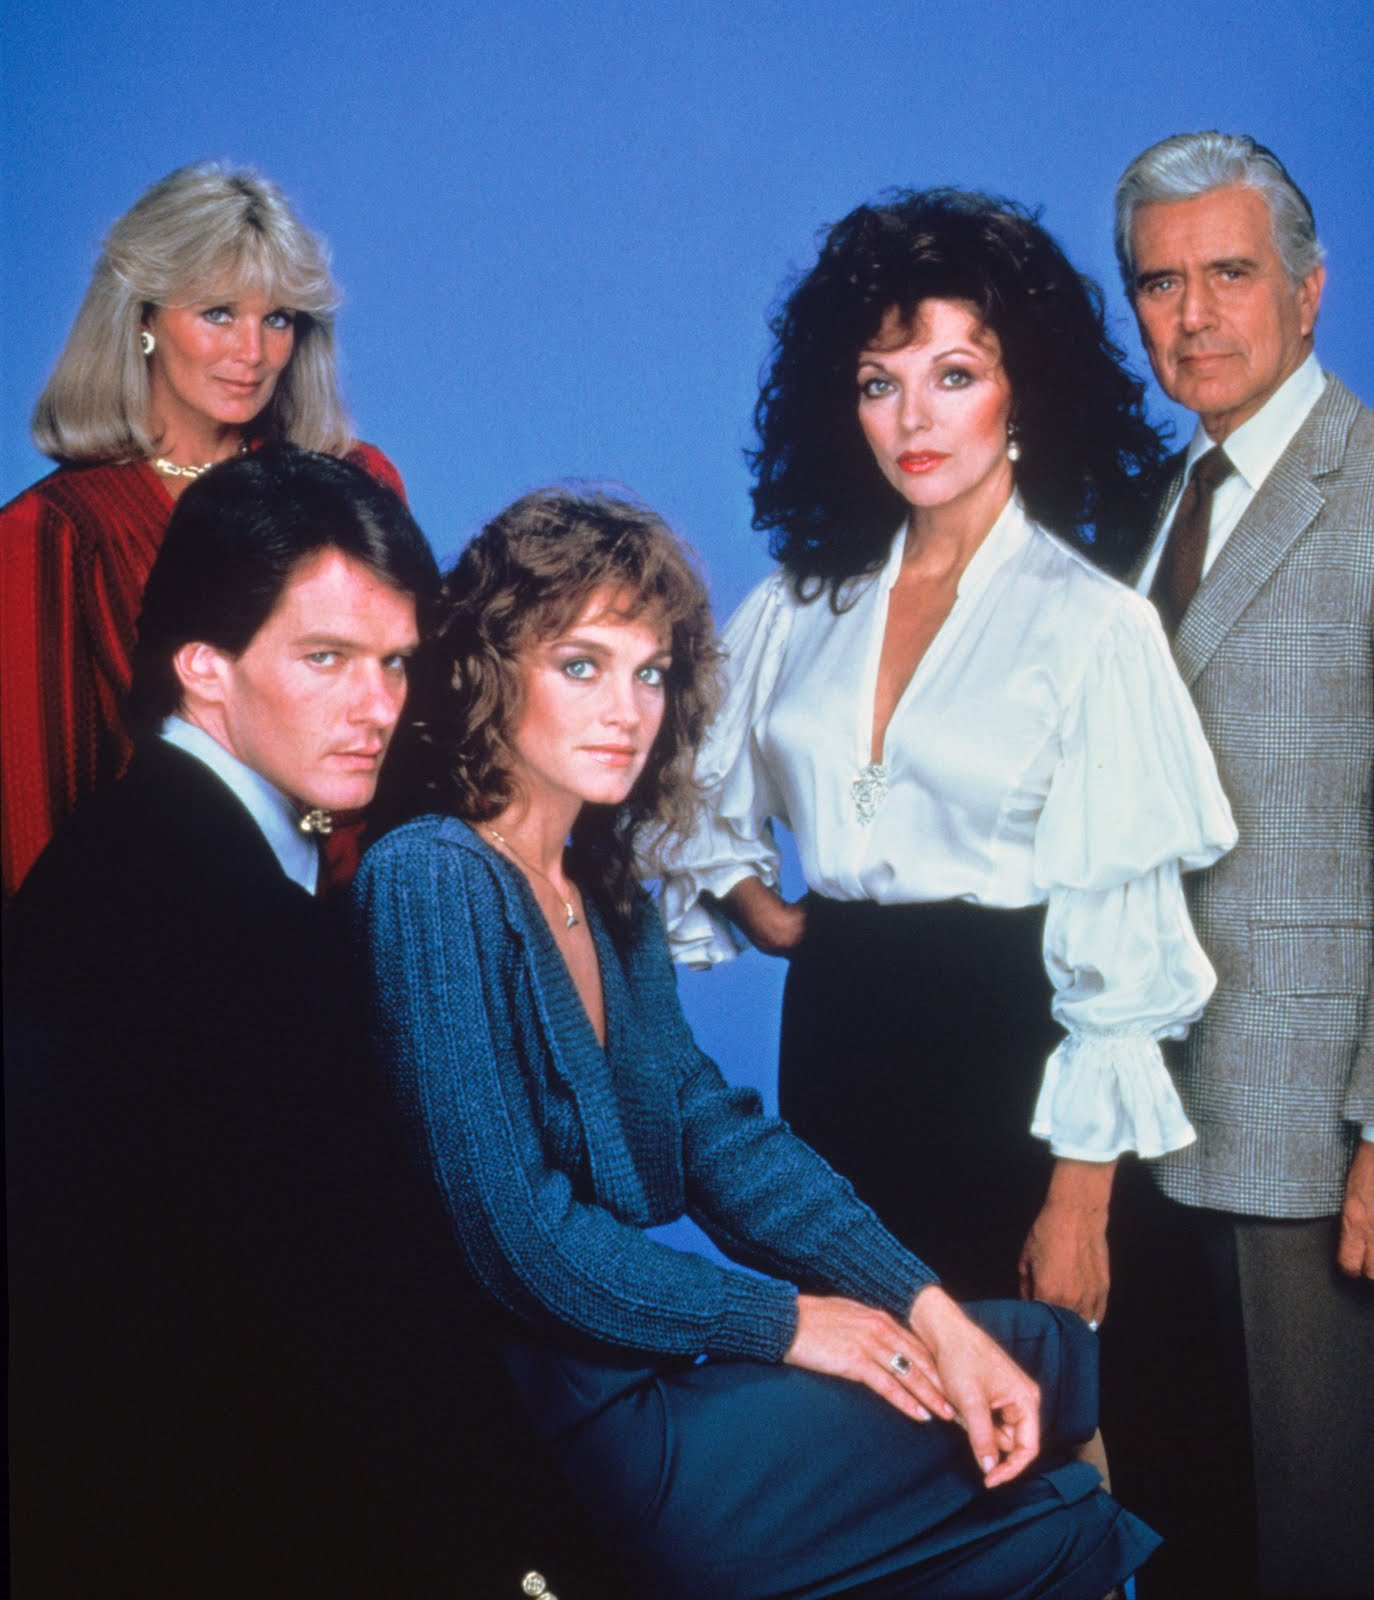 dynasty season 3 - photo #10